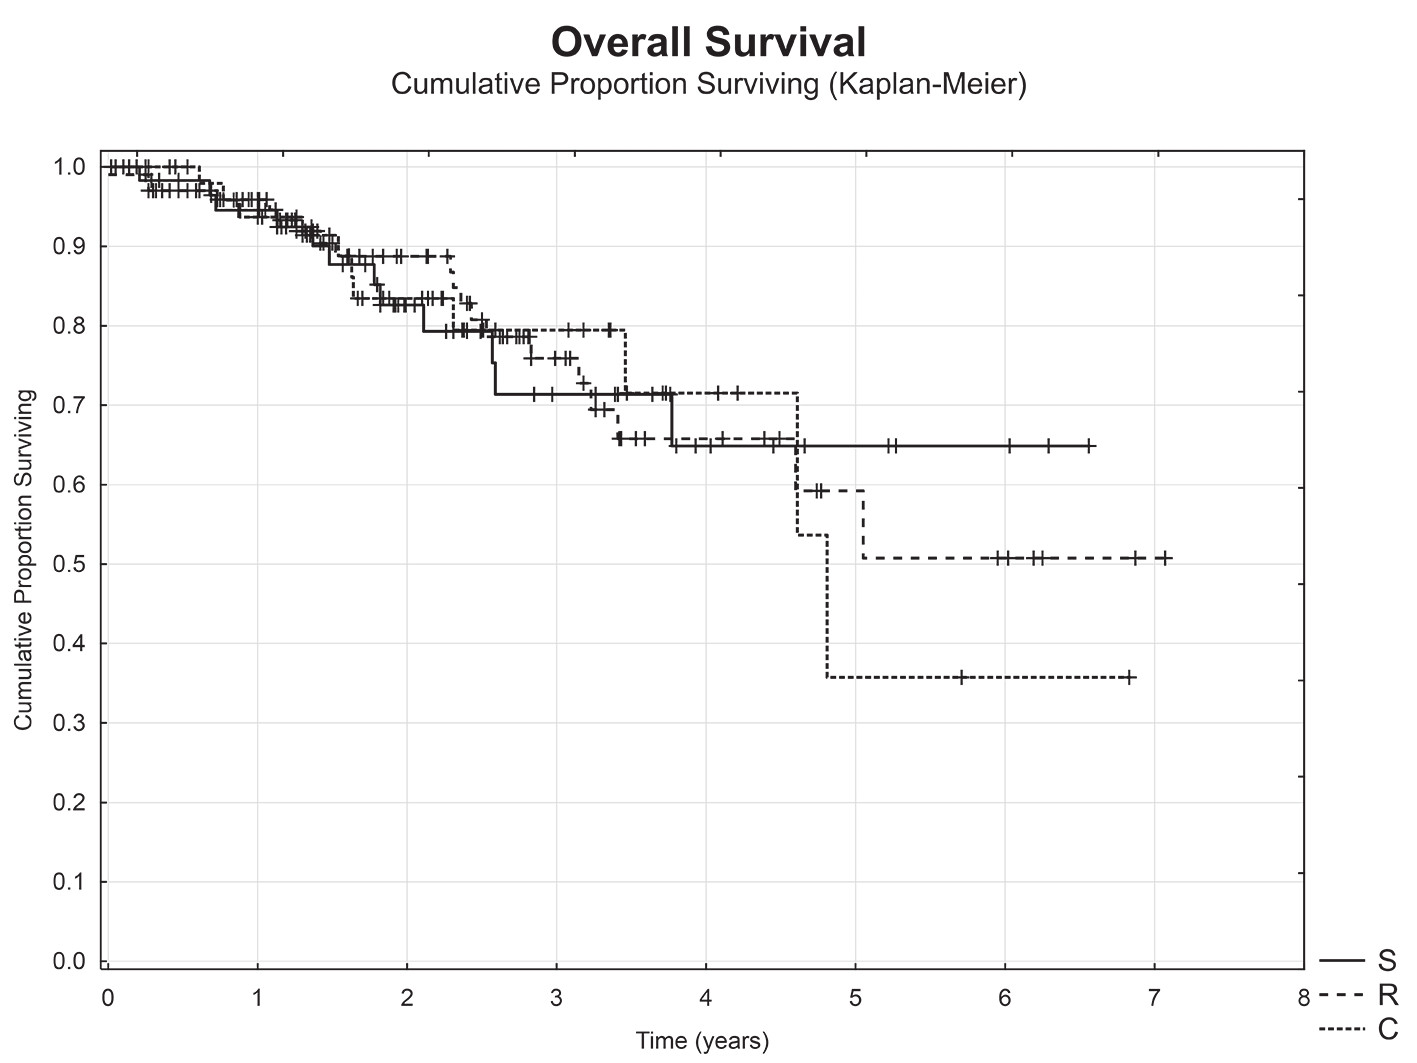 Celkové přežití nemocných v závislosti na origu tumoru (sigmoideum (S) vs. kolon (C) vs. rektum (R))